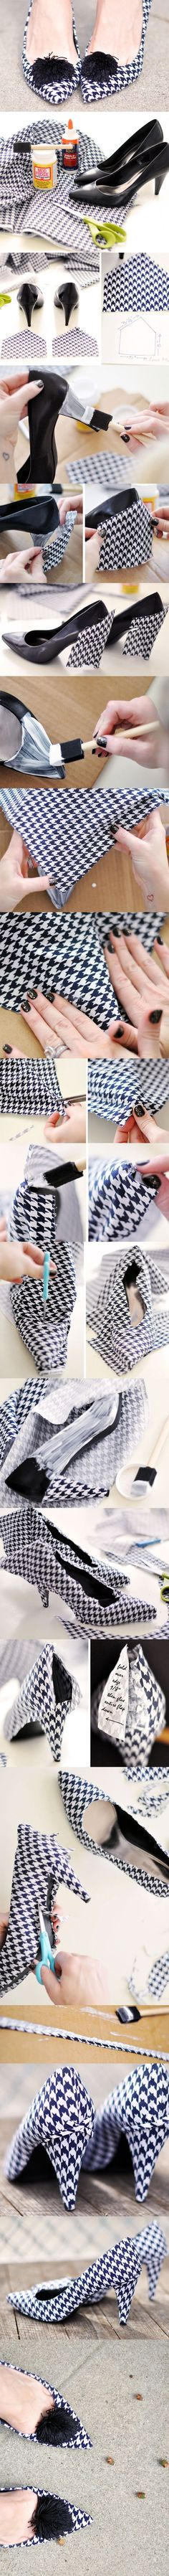 DIY: Designer Shoes Project I don't know whether to put this in shoes or crafts, but it's awesome. Do It Yourself Mode, Do It Yourself Fashion, Shoe Crafts, Diy And Crafts, Diy Projects To Try, Craft Projects, Shoe Makeover, Diy Accessoires, Ideias Diy